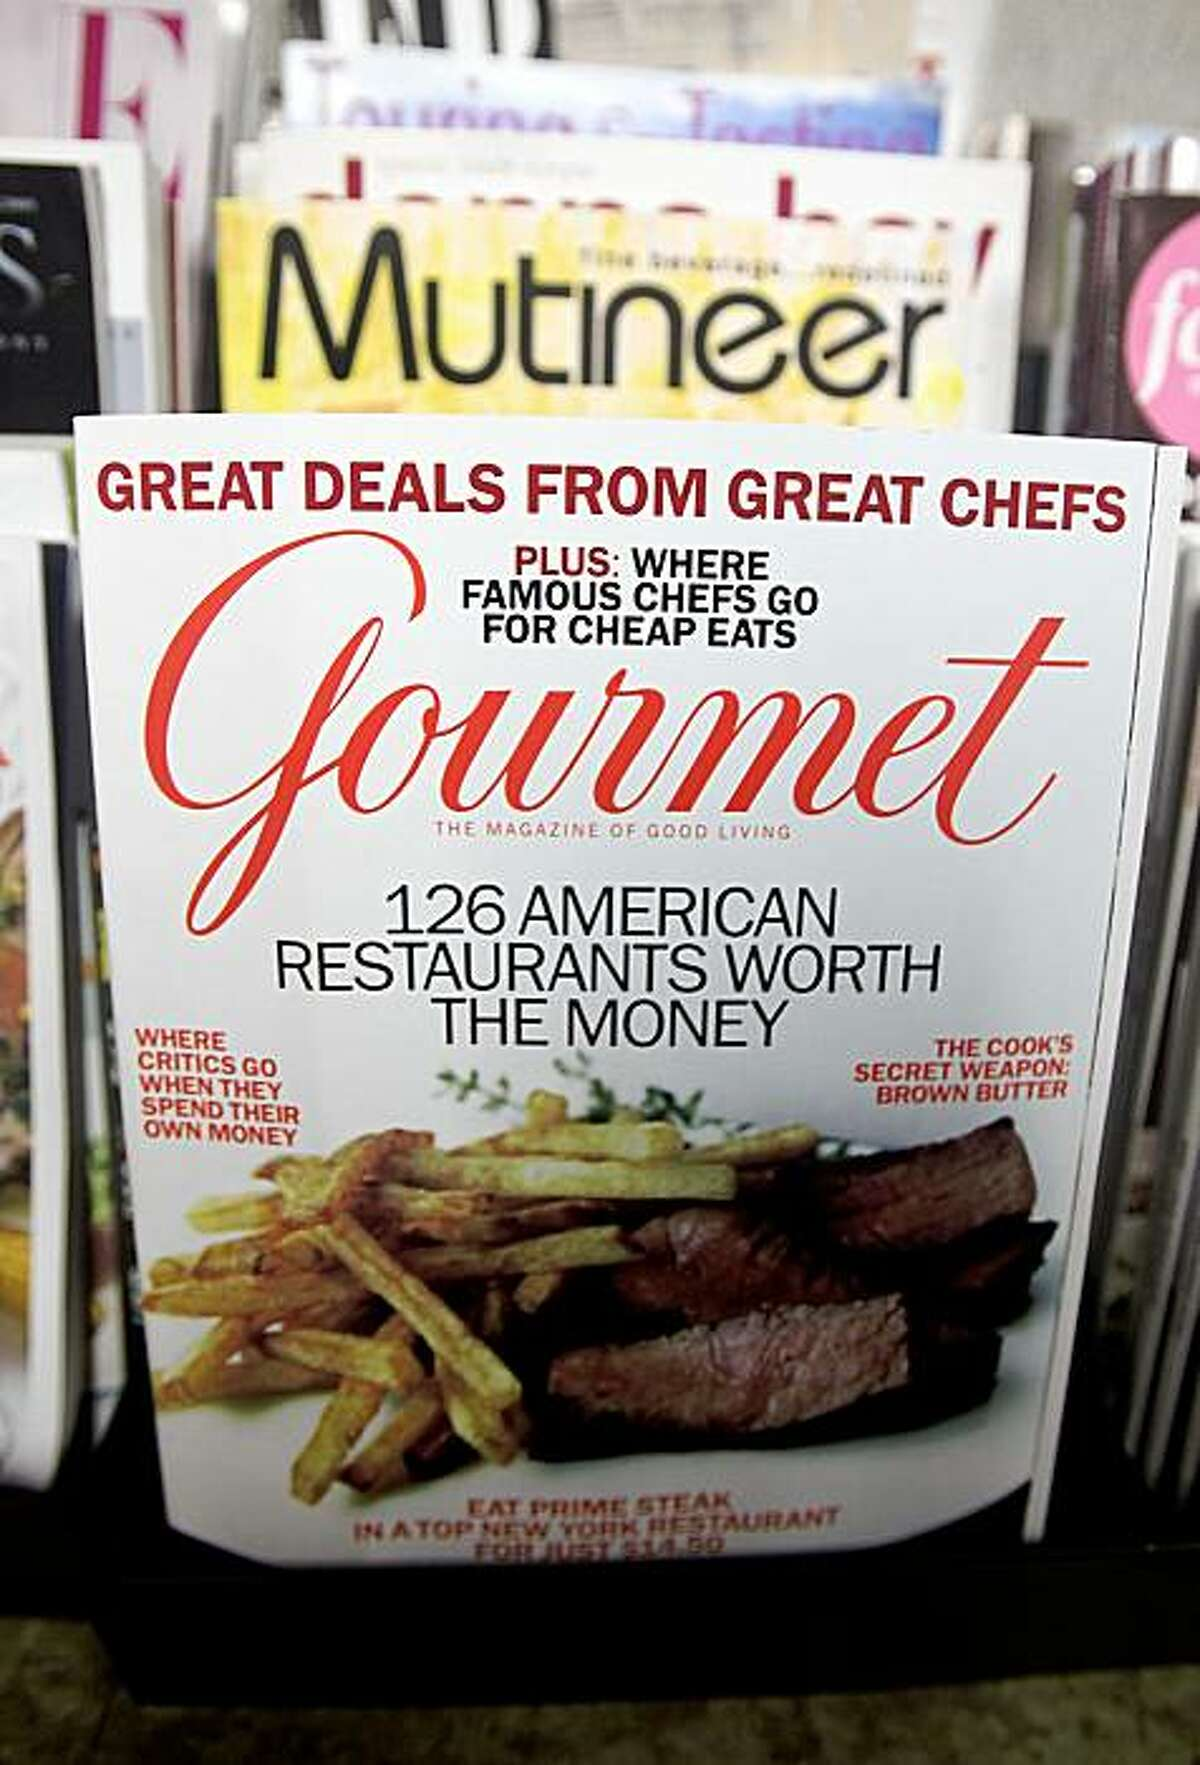 NEW YORK - OCTOBER 05: Copies of Gourmet magazine are displayed on a newsstand October 5, 2009 in New York City. The nation's oldest food magazine is being closed by parent company Conde Nast Publications following dwindling advertising revenues. Conde Nast is also closing Modern Bride, Elegant Bride and Cookie magazines. (Photo by Mario Tama/Getty Images)